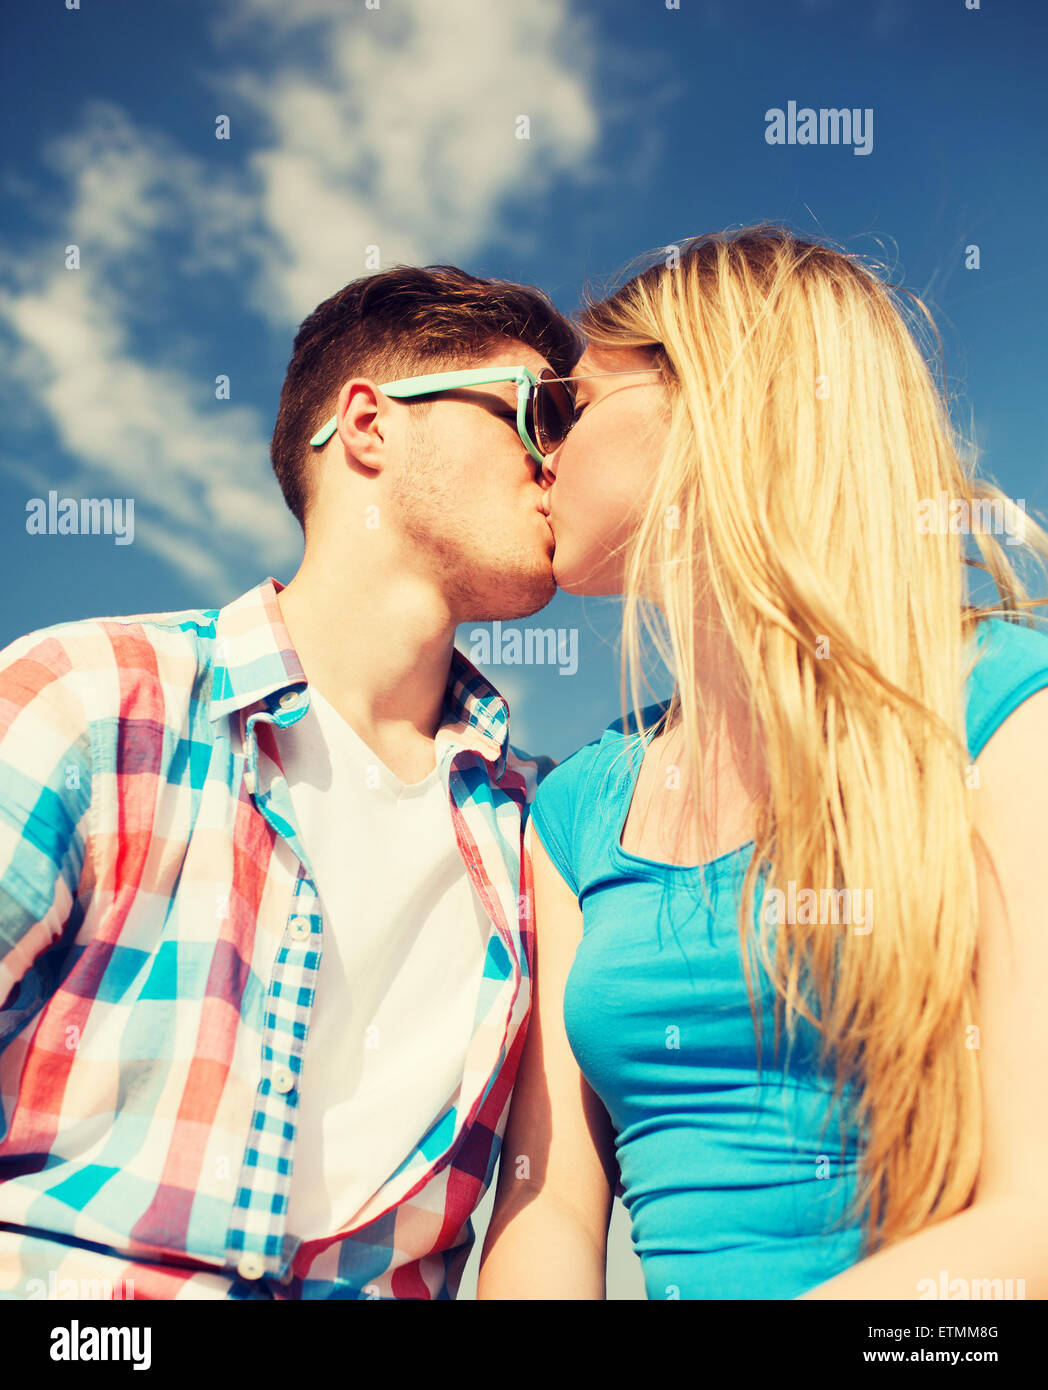 Smiling couple outdoors Photo Stock